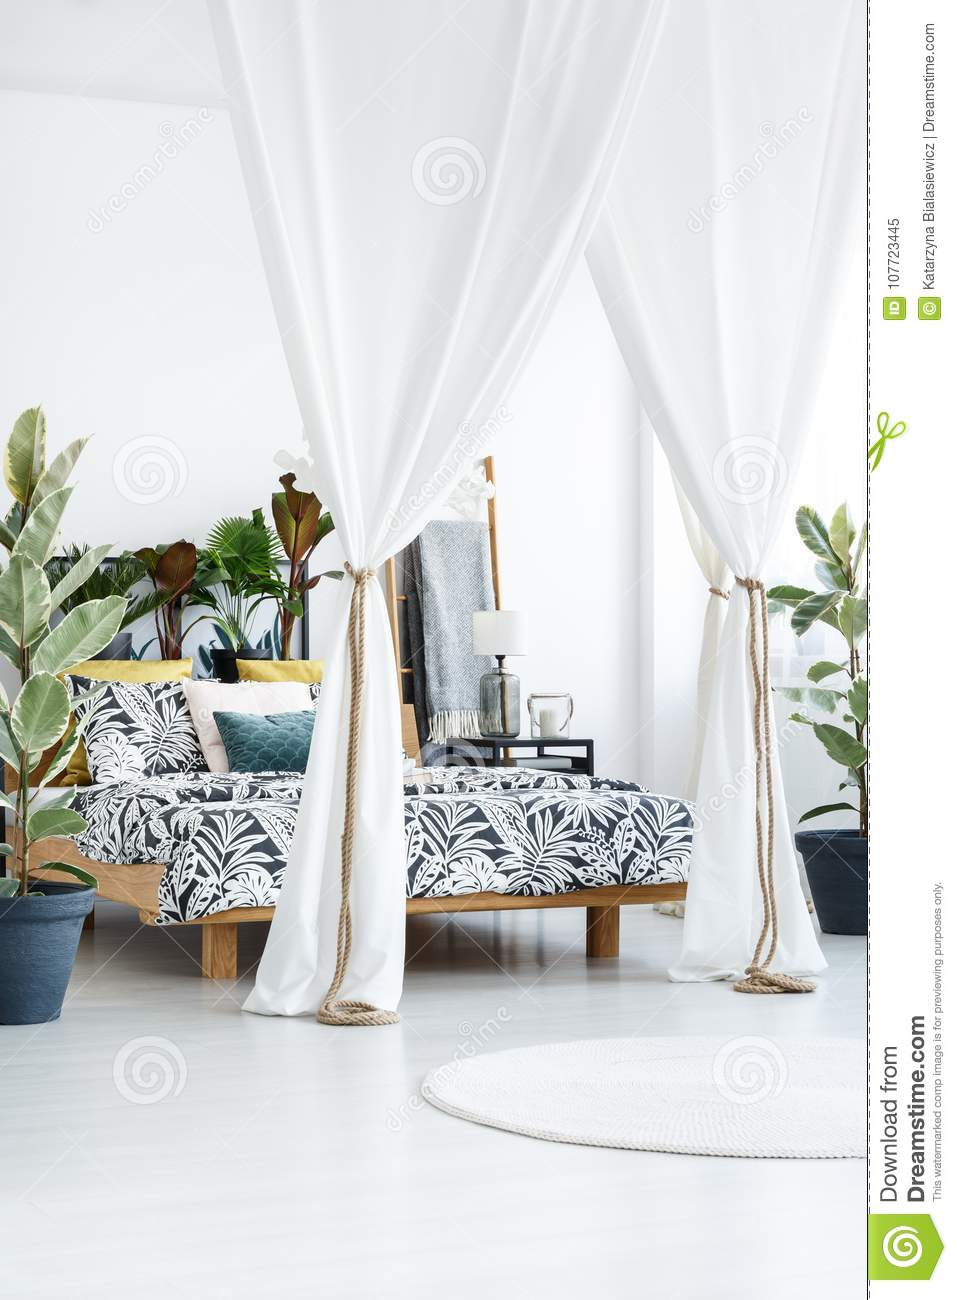 White Drapes In Bright Bedroom Stock Image Image Of Furniture Lamp 107723445